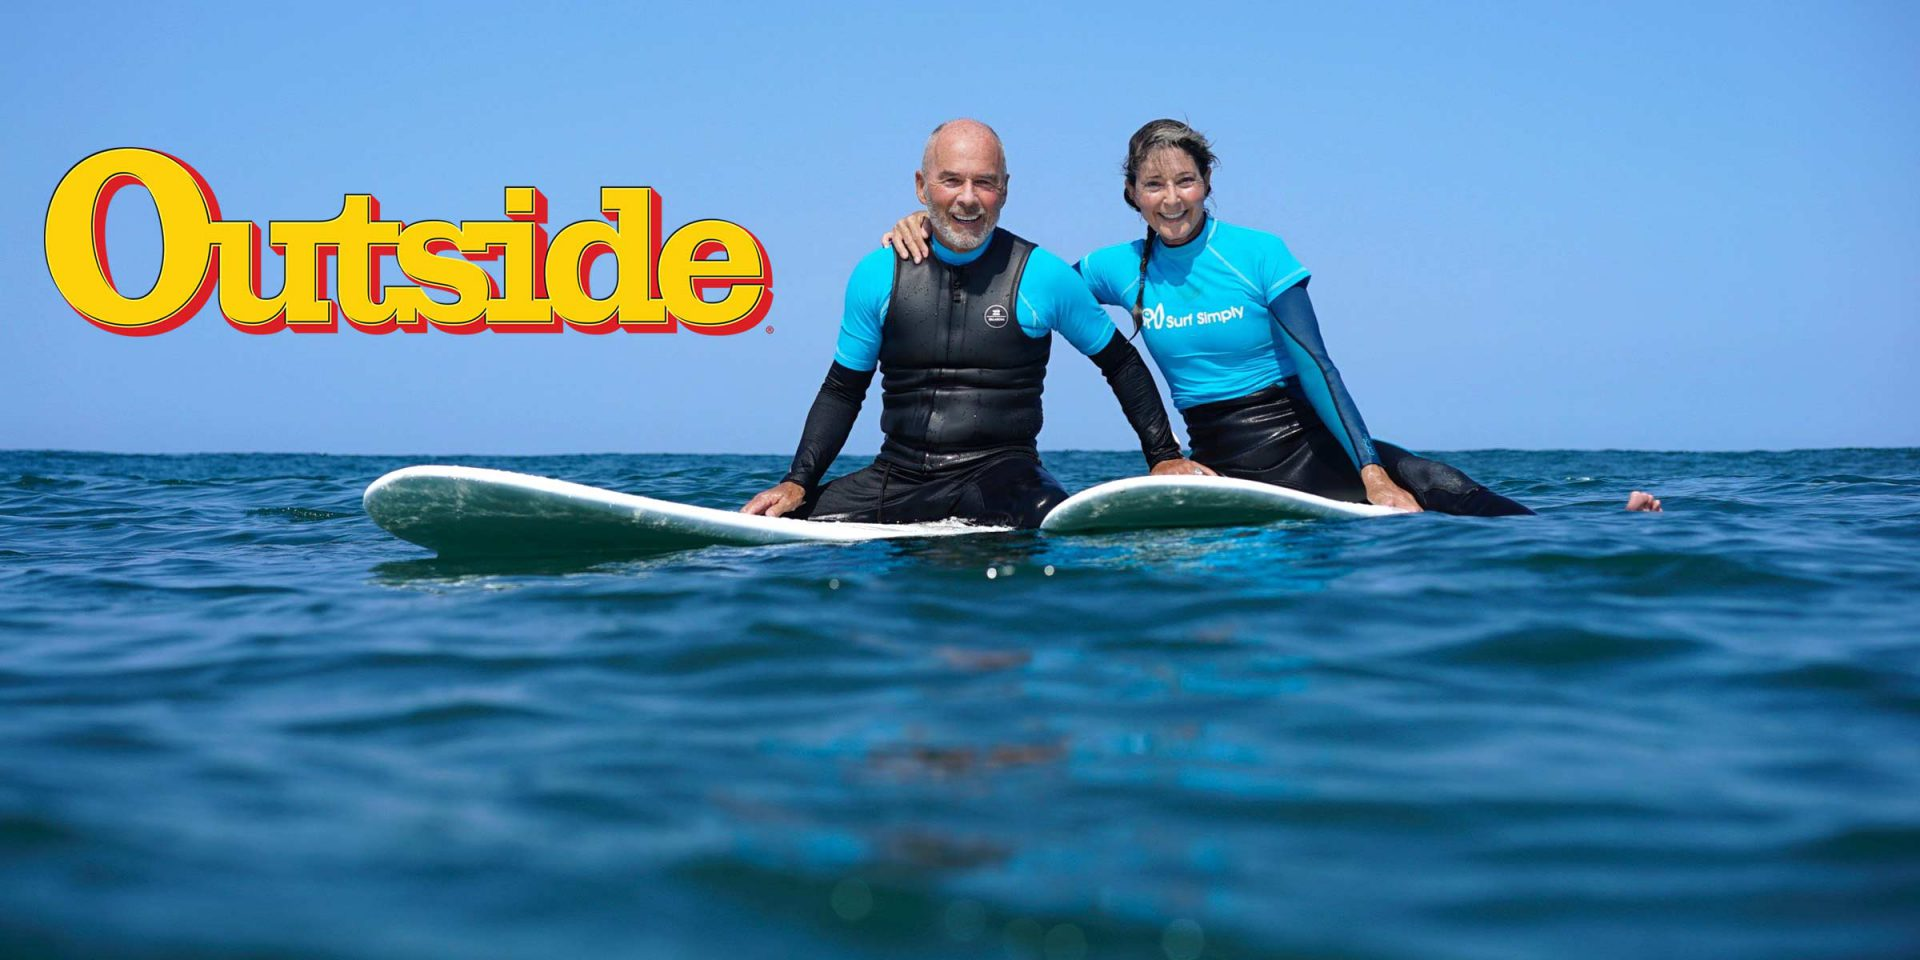 Learning to Surf at Age 73